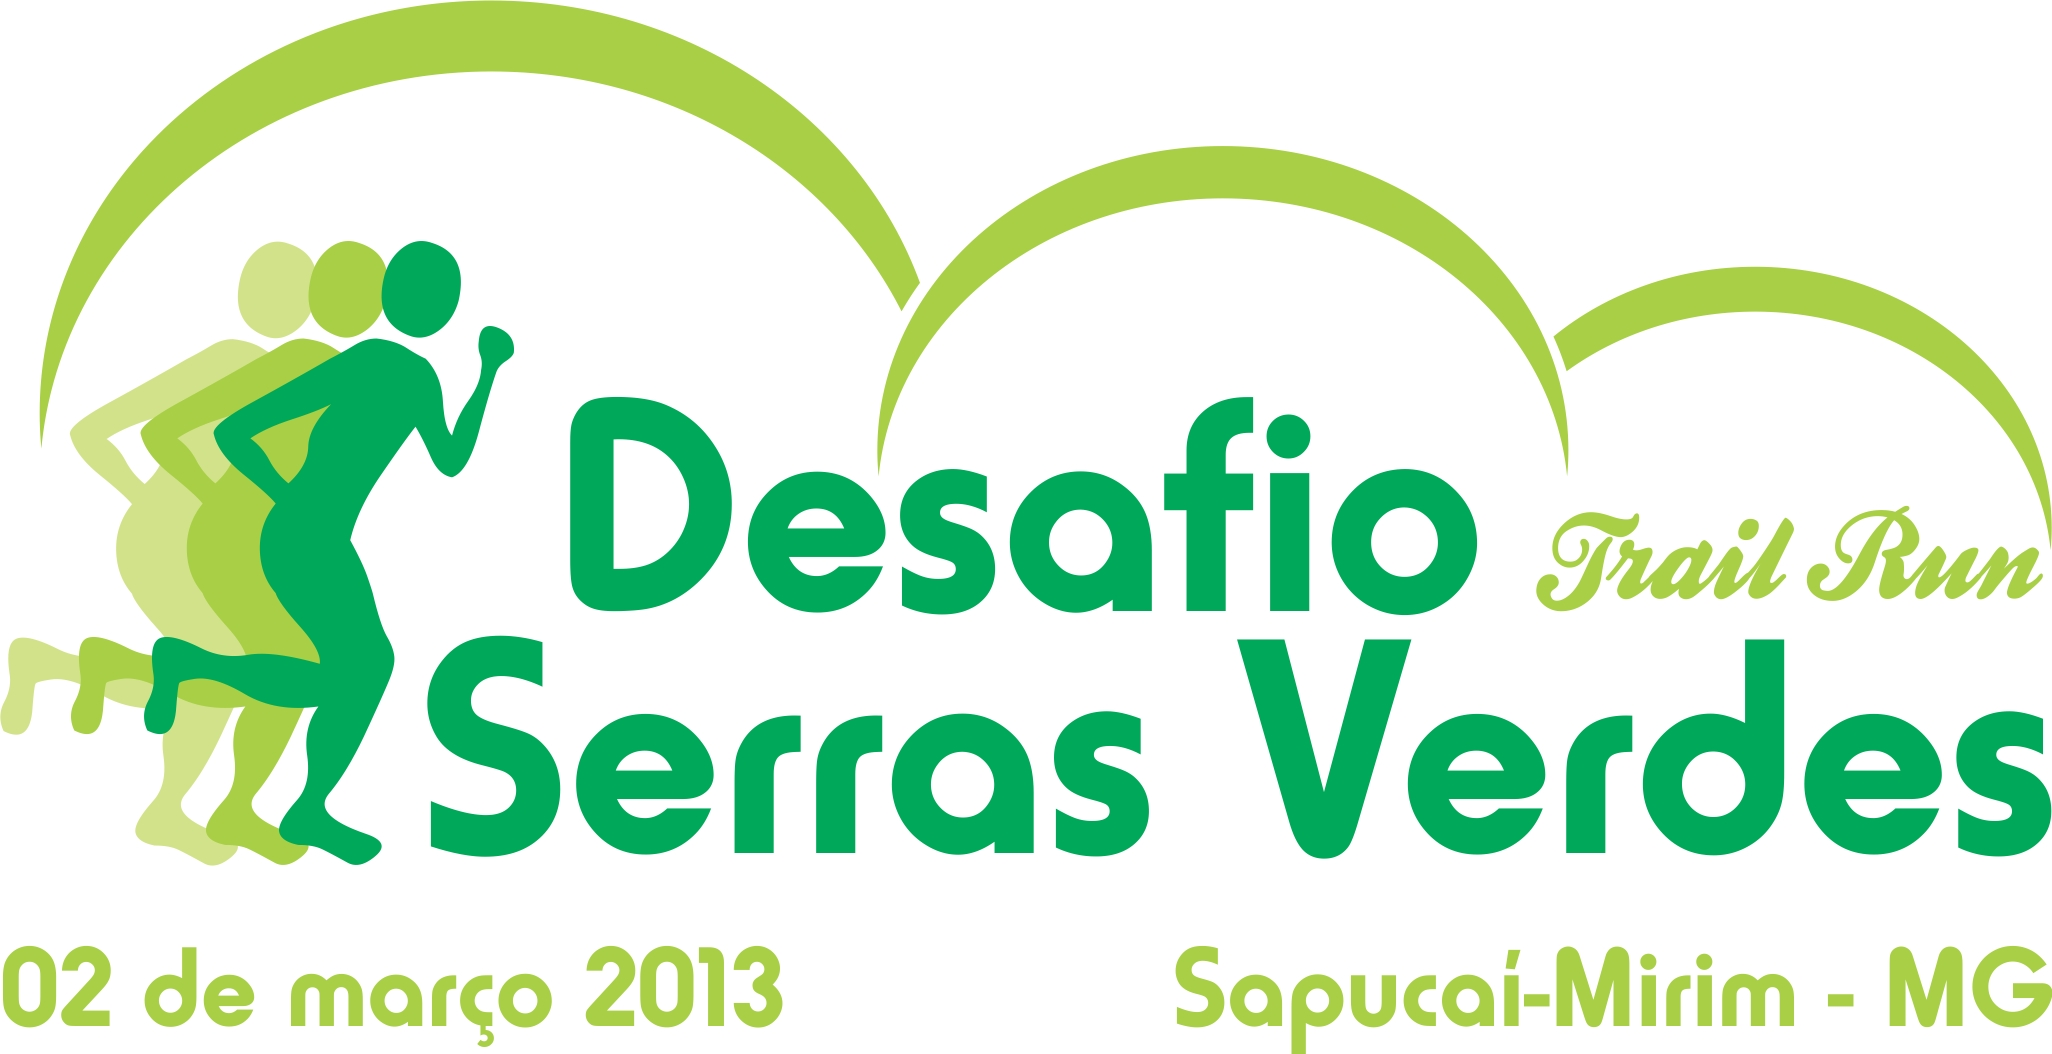 Desafio Serras Verdes Trail Run 02/03/2013